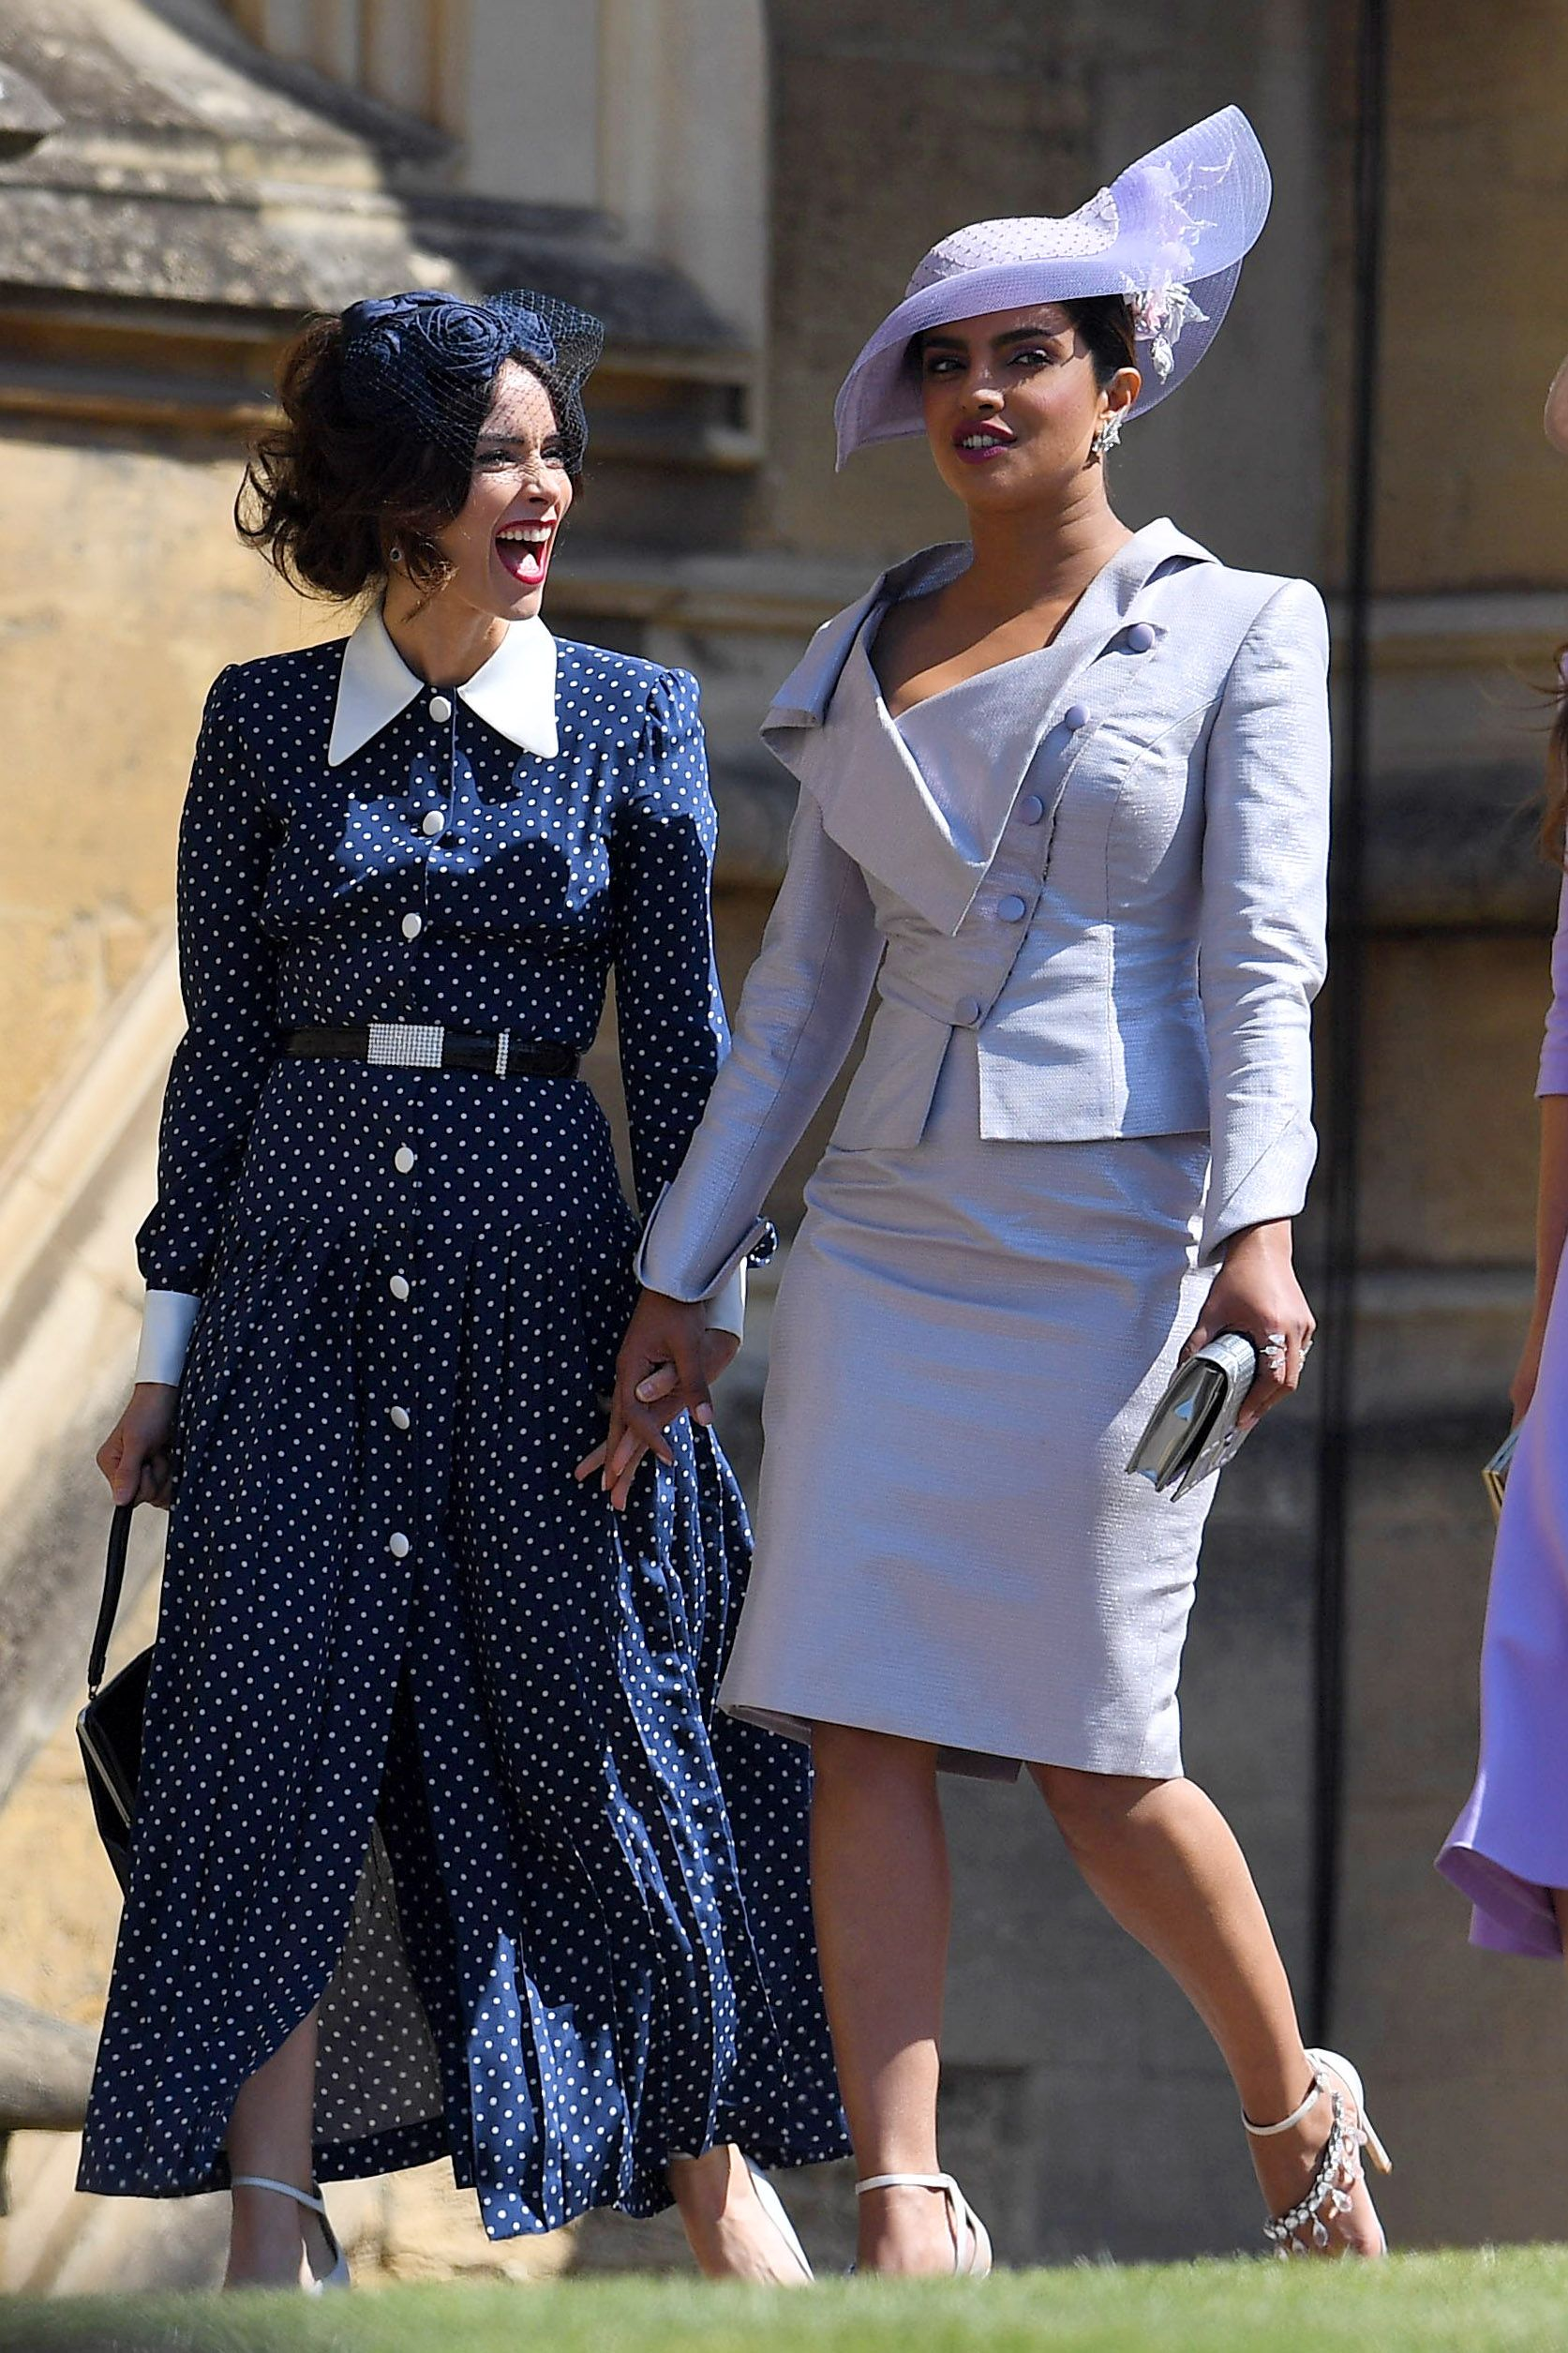 31c100a5d0460 Abigail Spencer and Priyanka Chopra arrive at Harry and Meghan s wedding.  (May 19